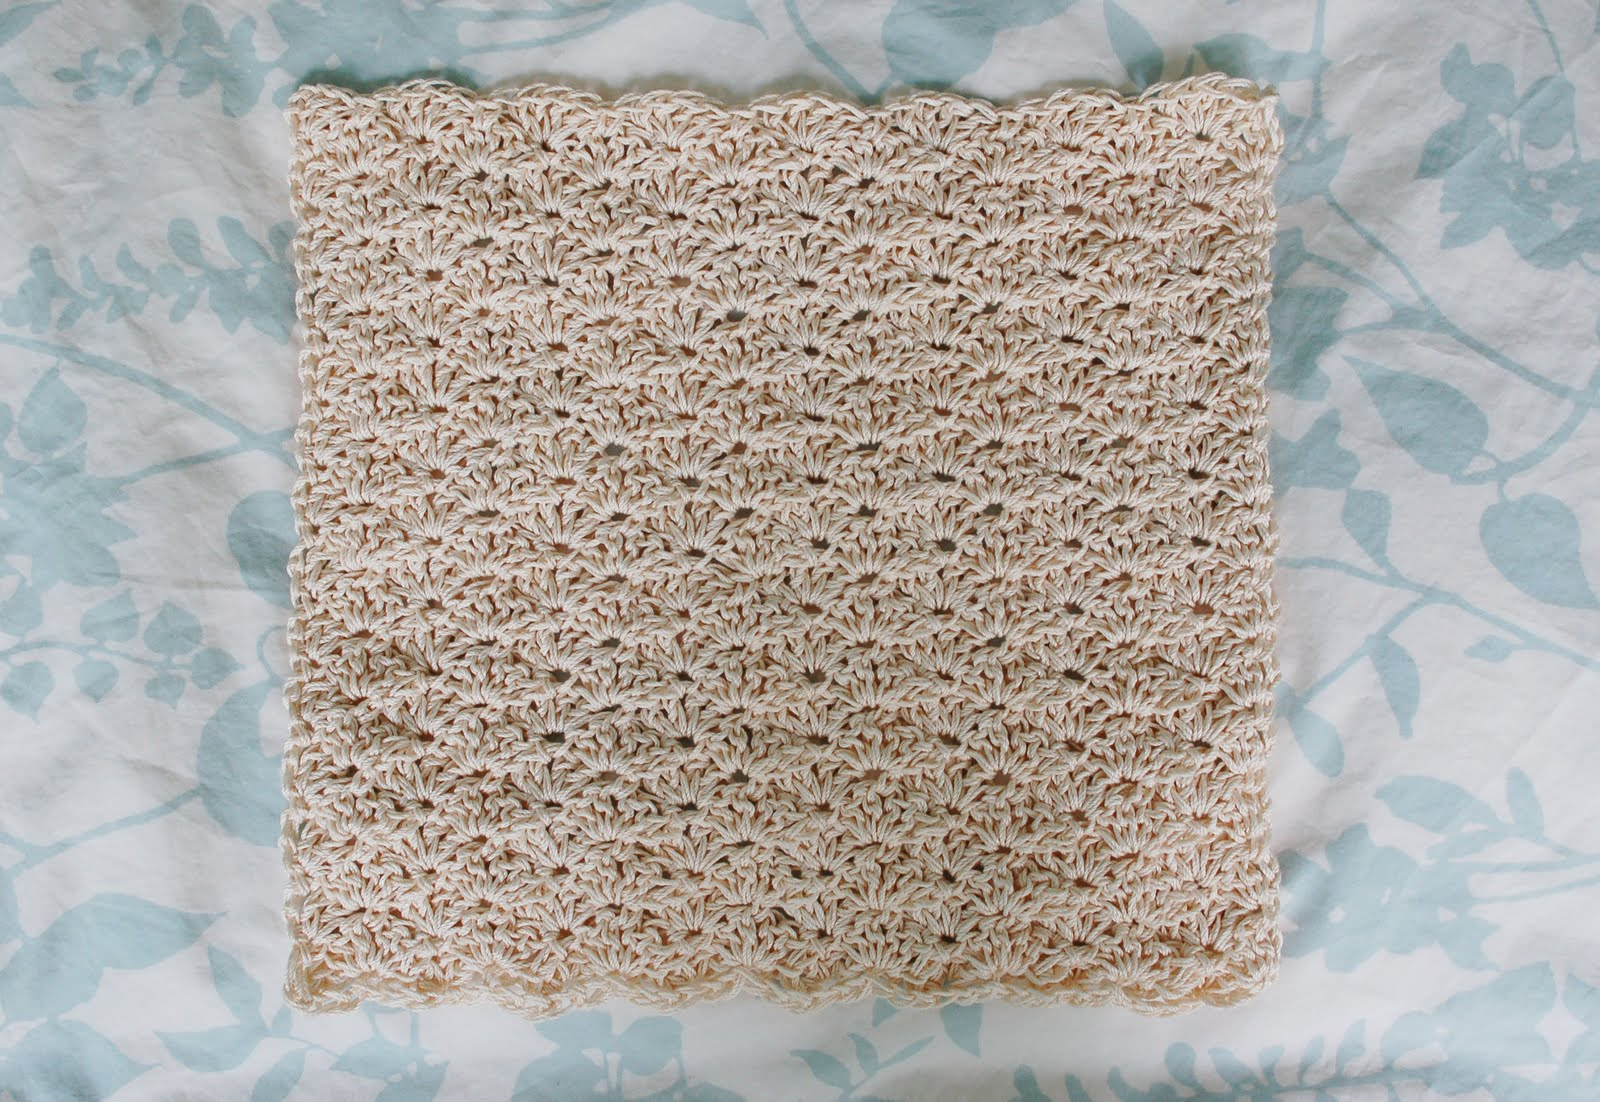 Crochet Cotton Thread Size 10 Pattern Free Free Patterns For Crochet